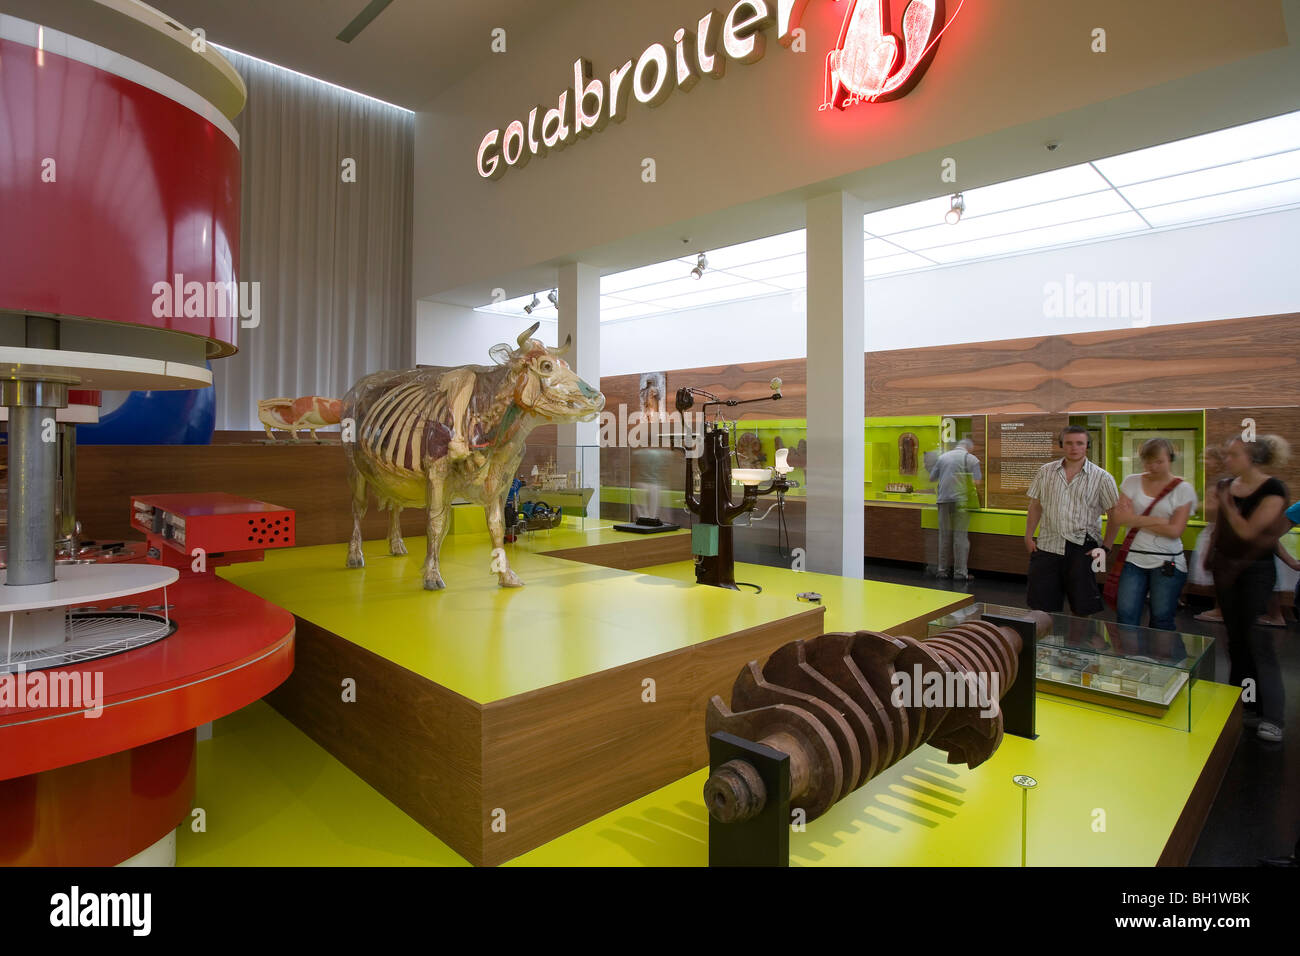 Das Deutsche Hygiene Museum, DHMD, Room 3 Eating and Drinking, Glass cow, Dresden, Saxony, Germany, Europe - Stock Image